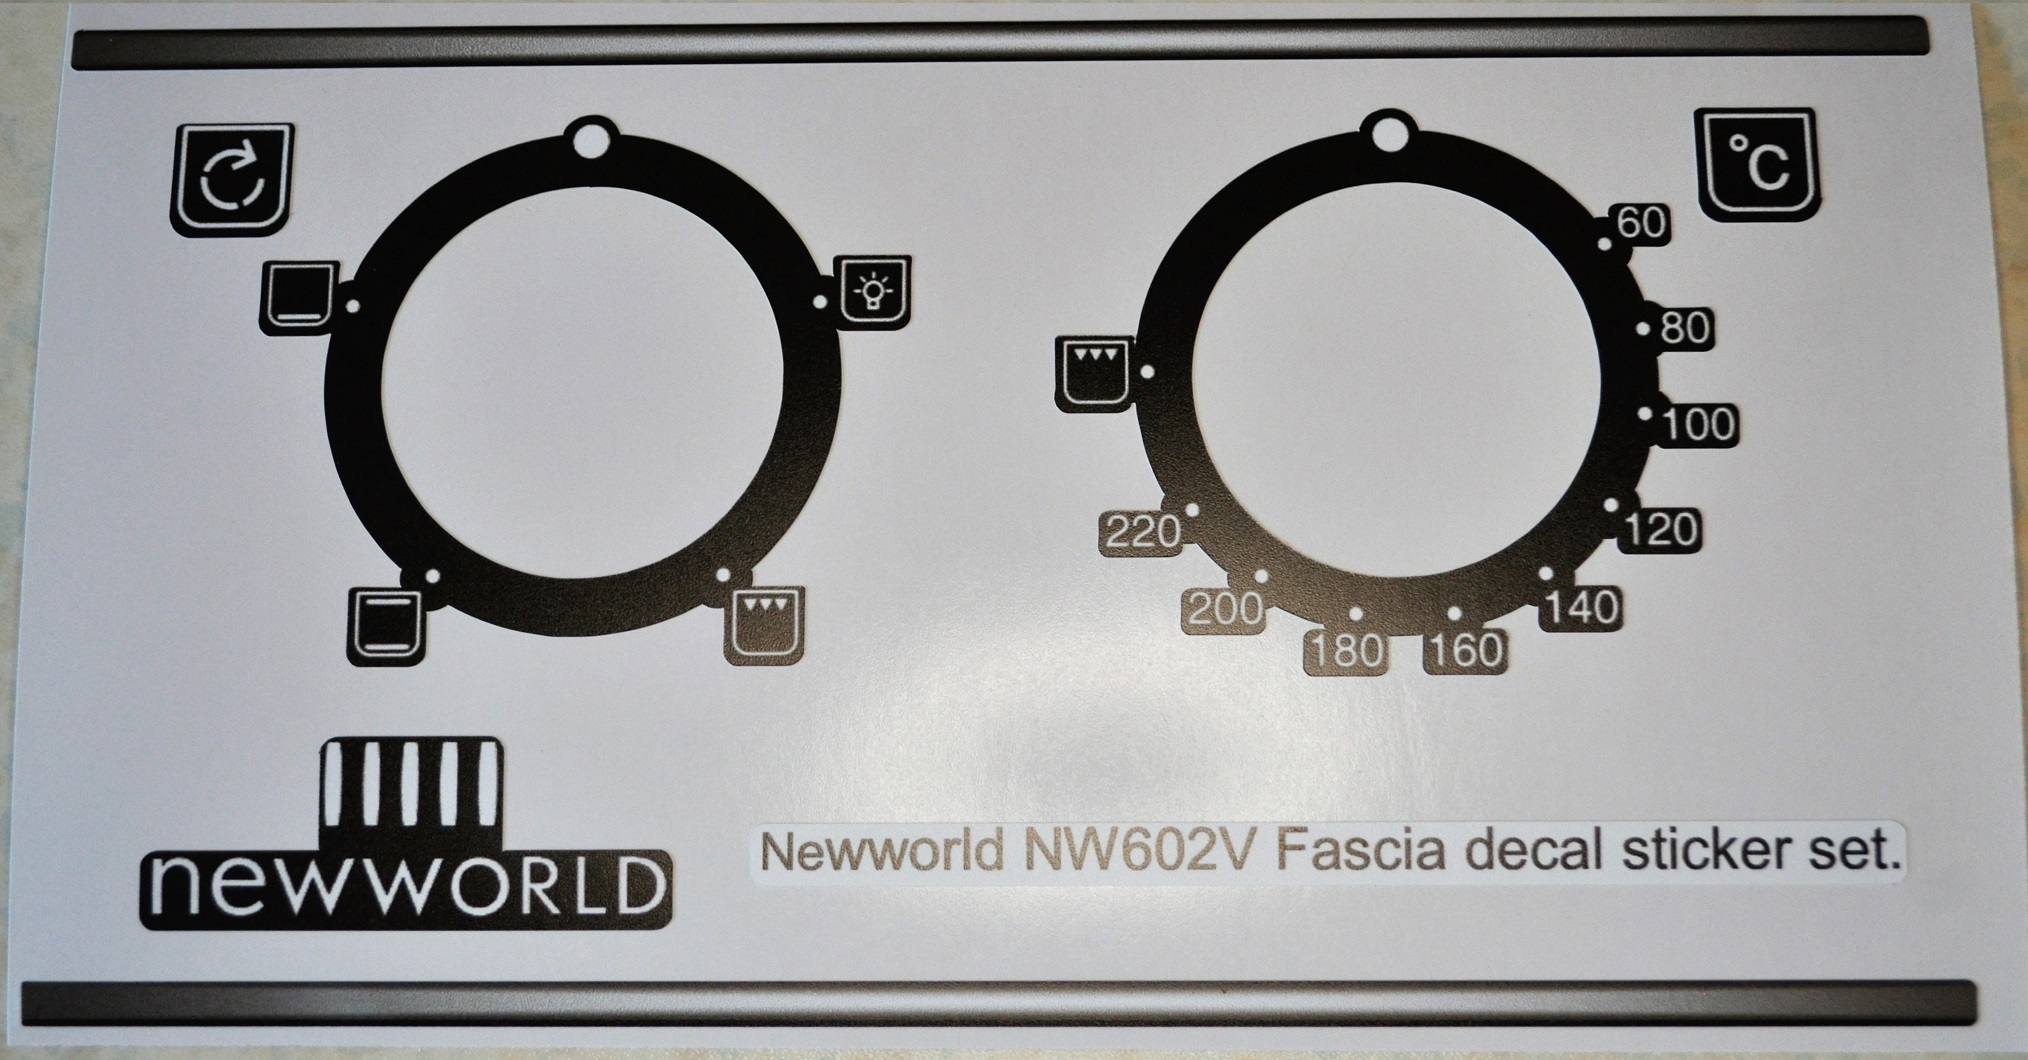 Newworld NW602V black fascia decal sticker set.